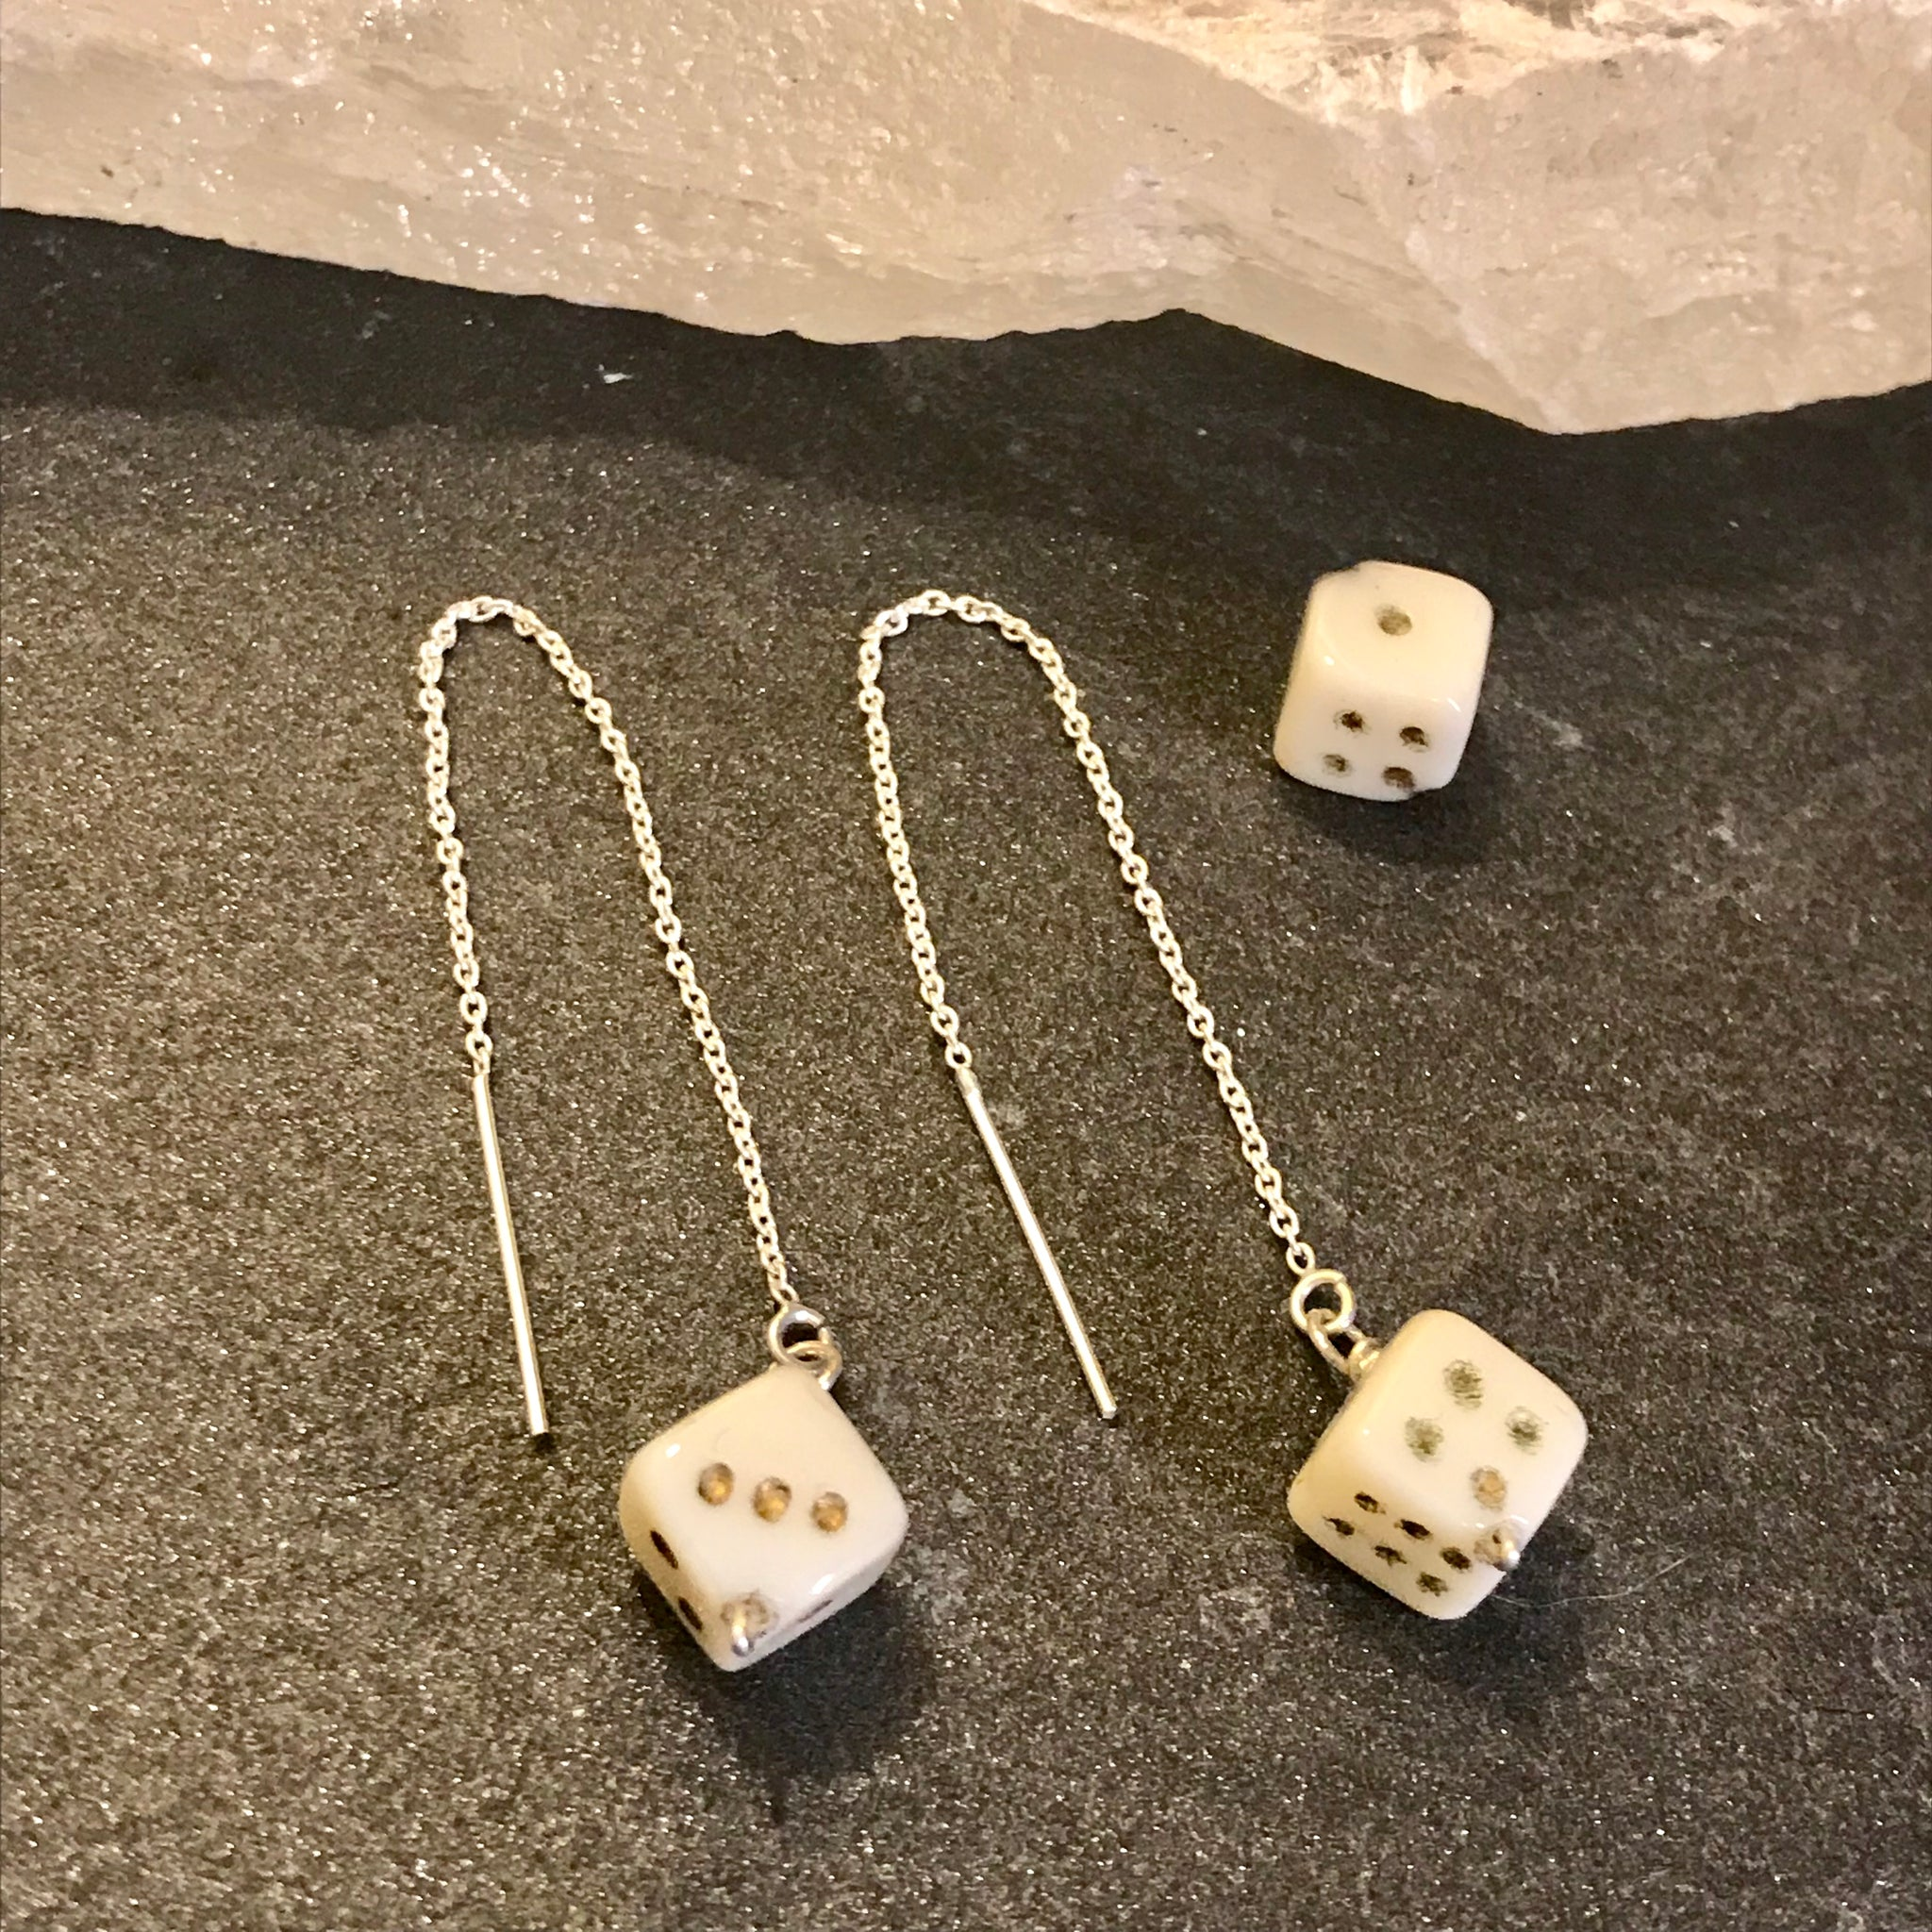 Dice Divination Jewelry🎲